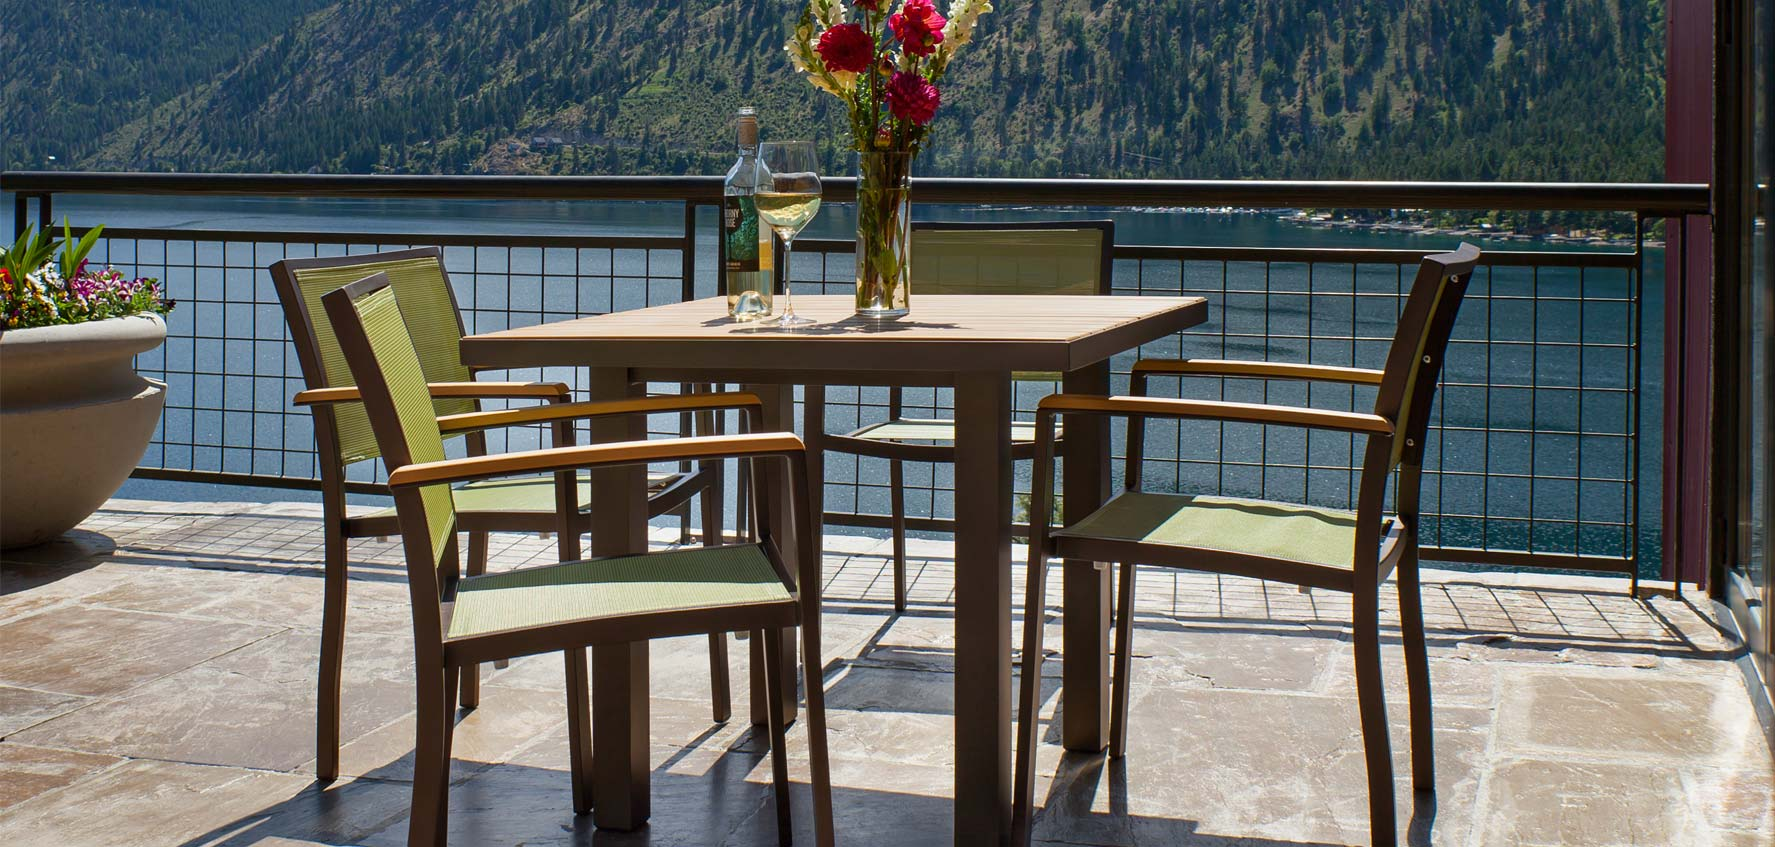 Patio Table All Weather Outdoor Patio Furniture Sets Vermont Woods Studios